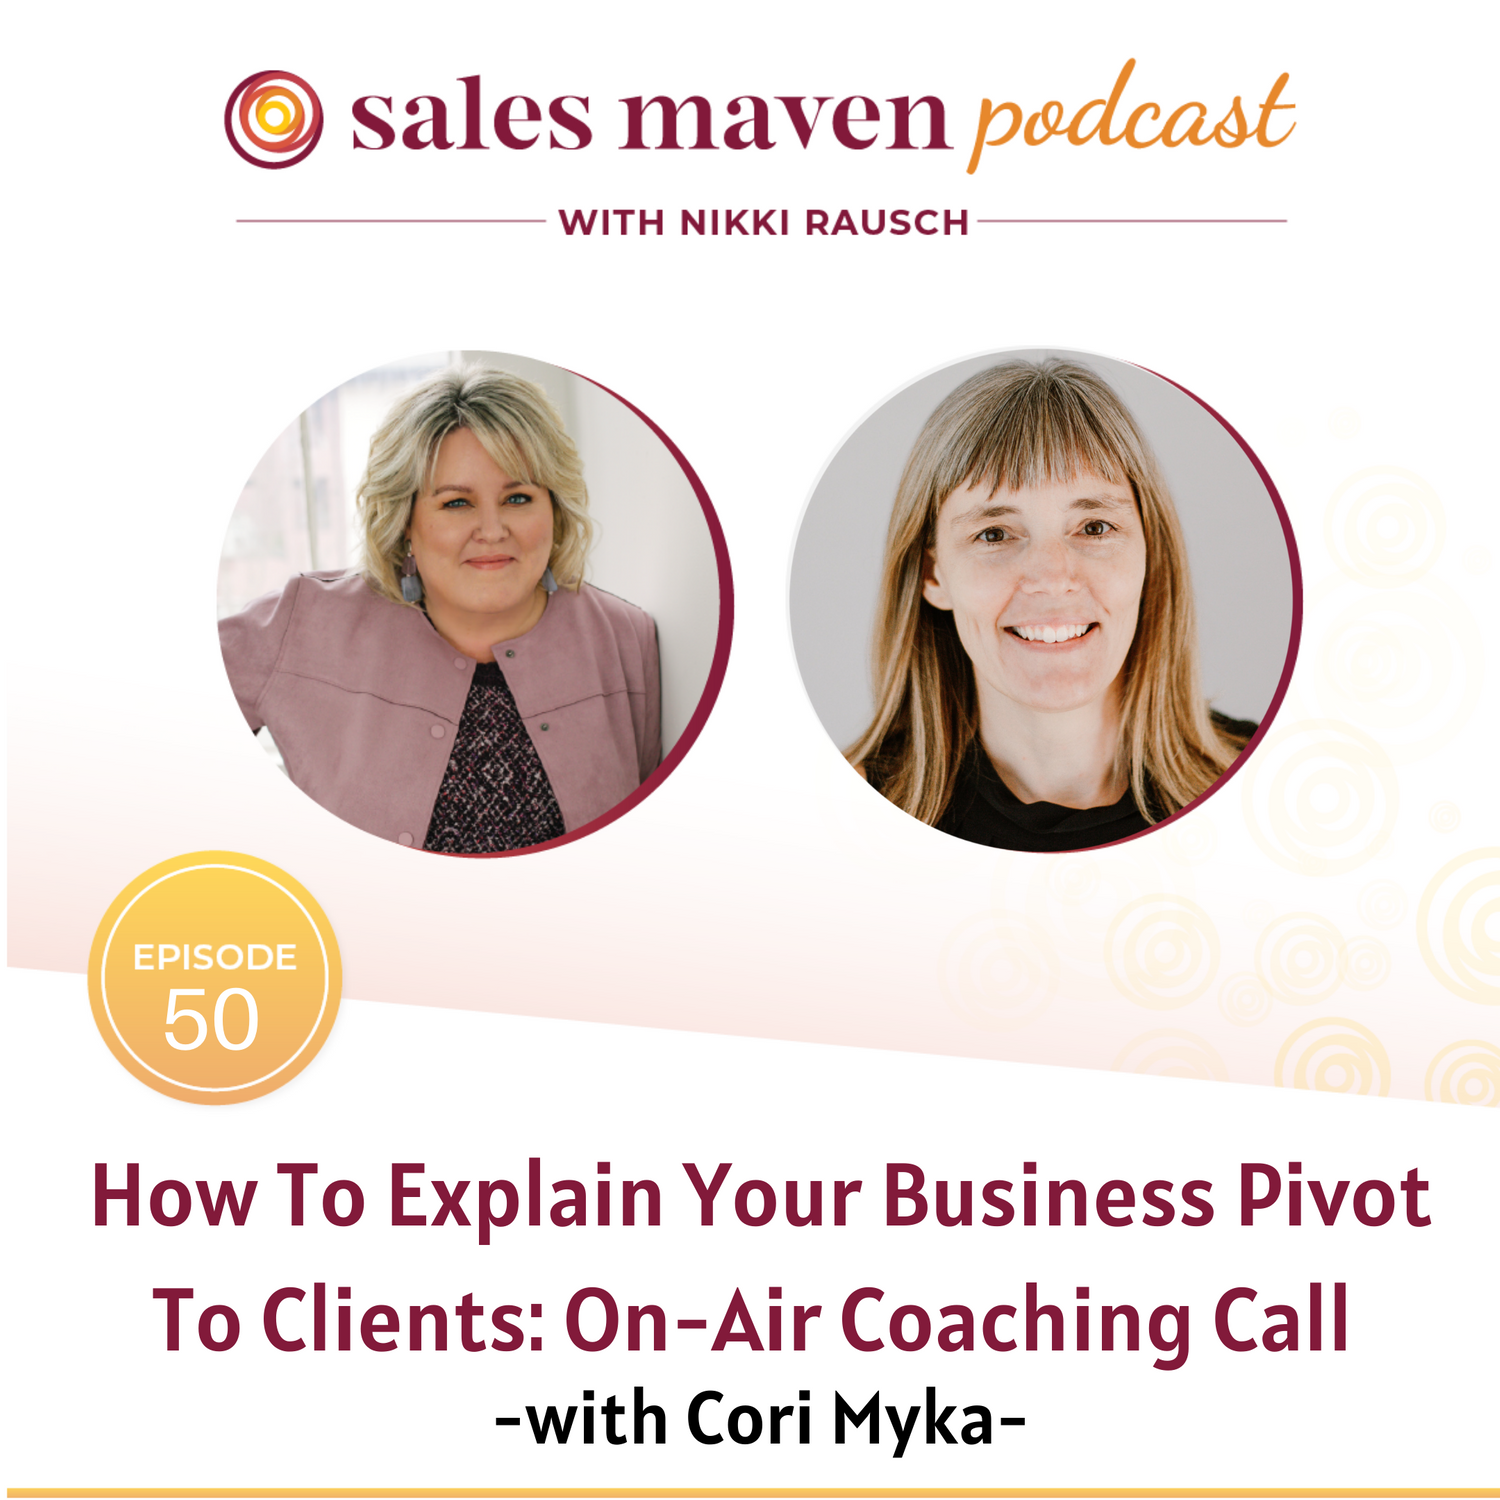 Sales Maven Podcast - How to explains your business pivot to clients with Cori Myka